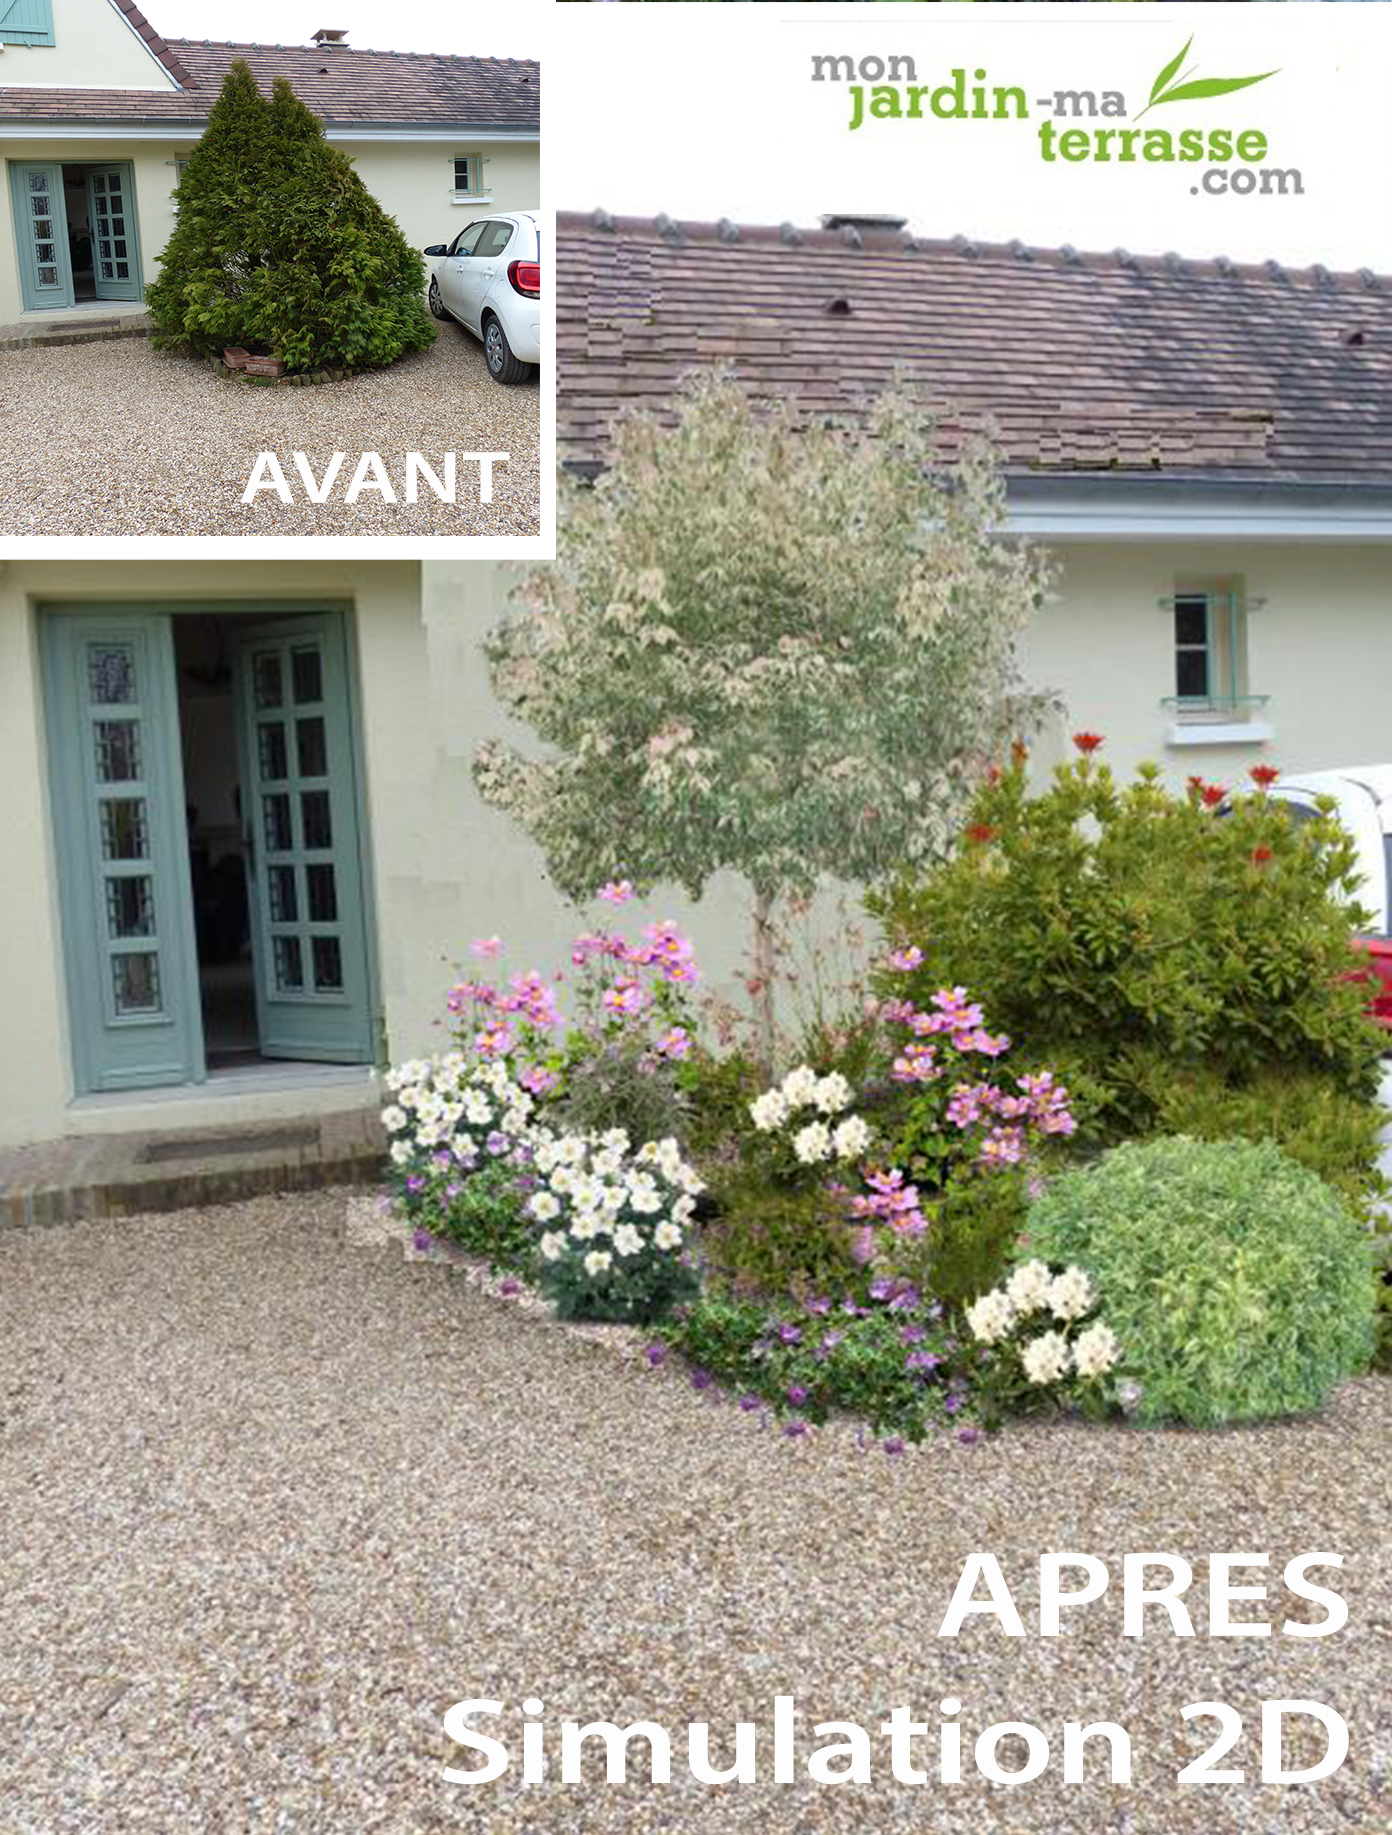 Am nagement d entr e ext rieur de maison monjardin for Amenagement entree maison